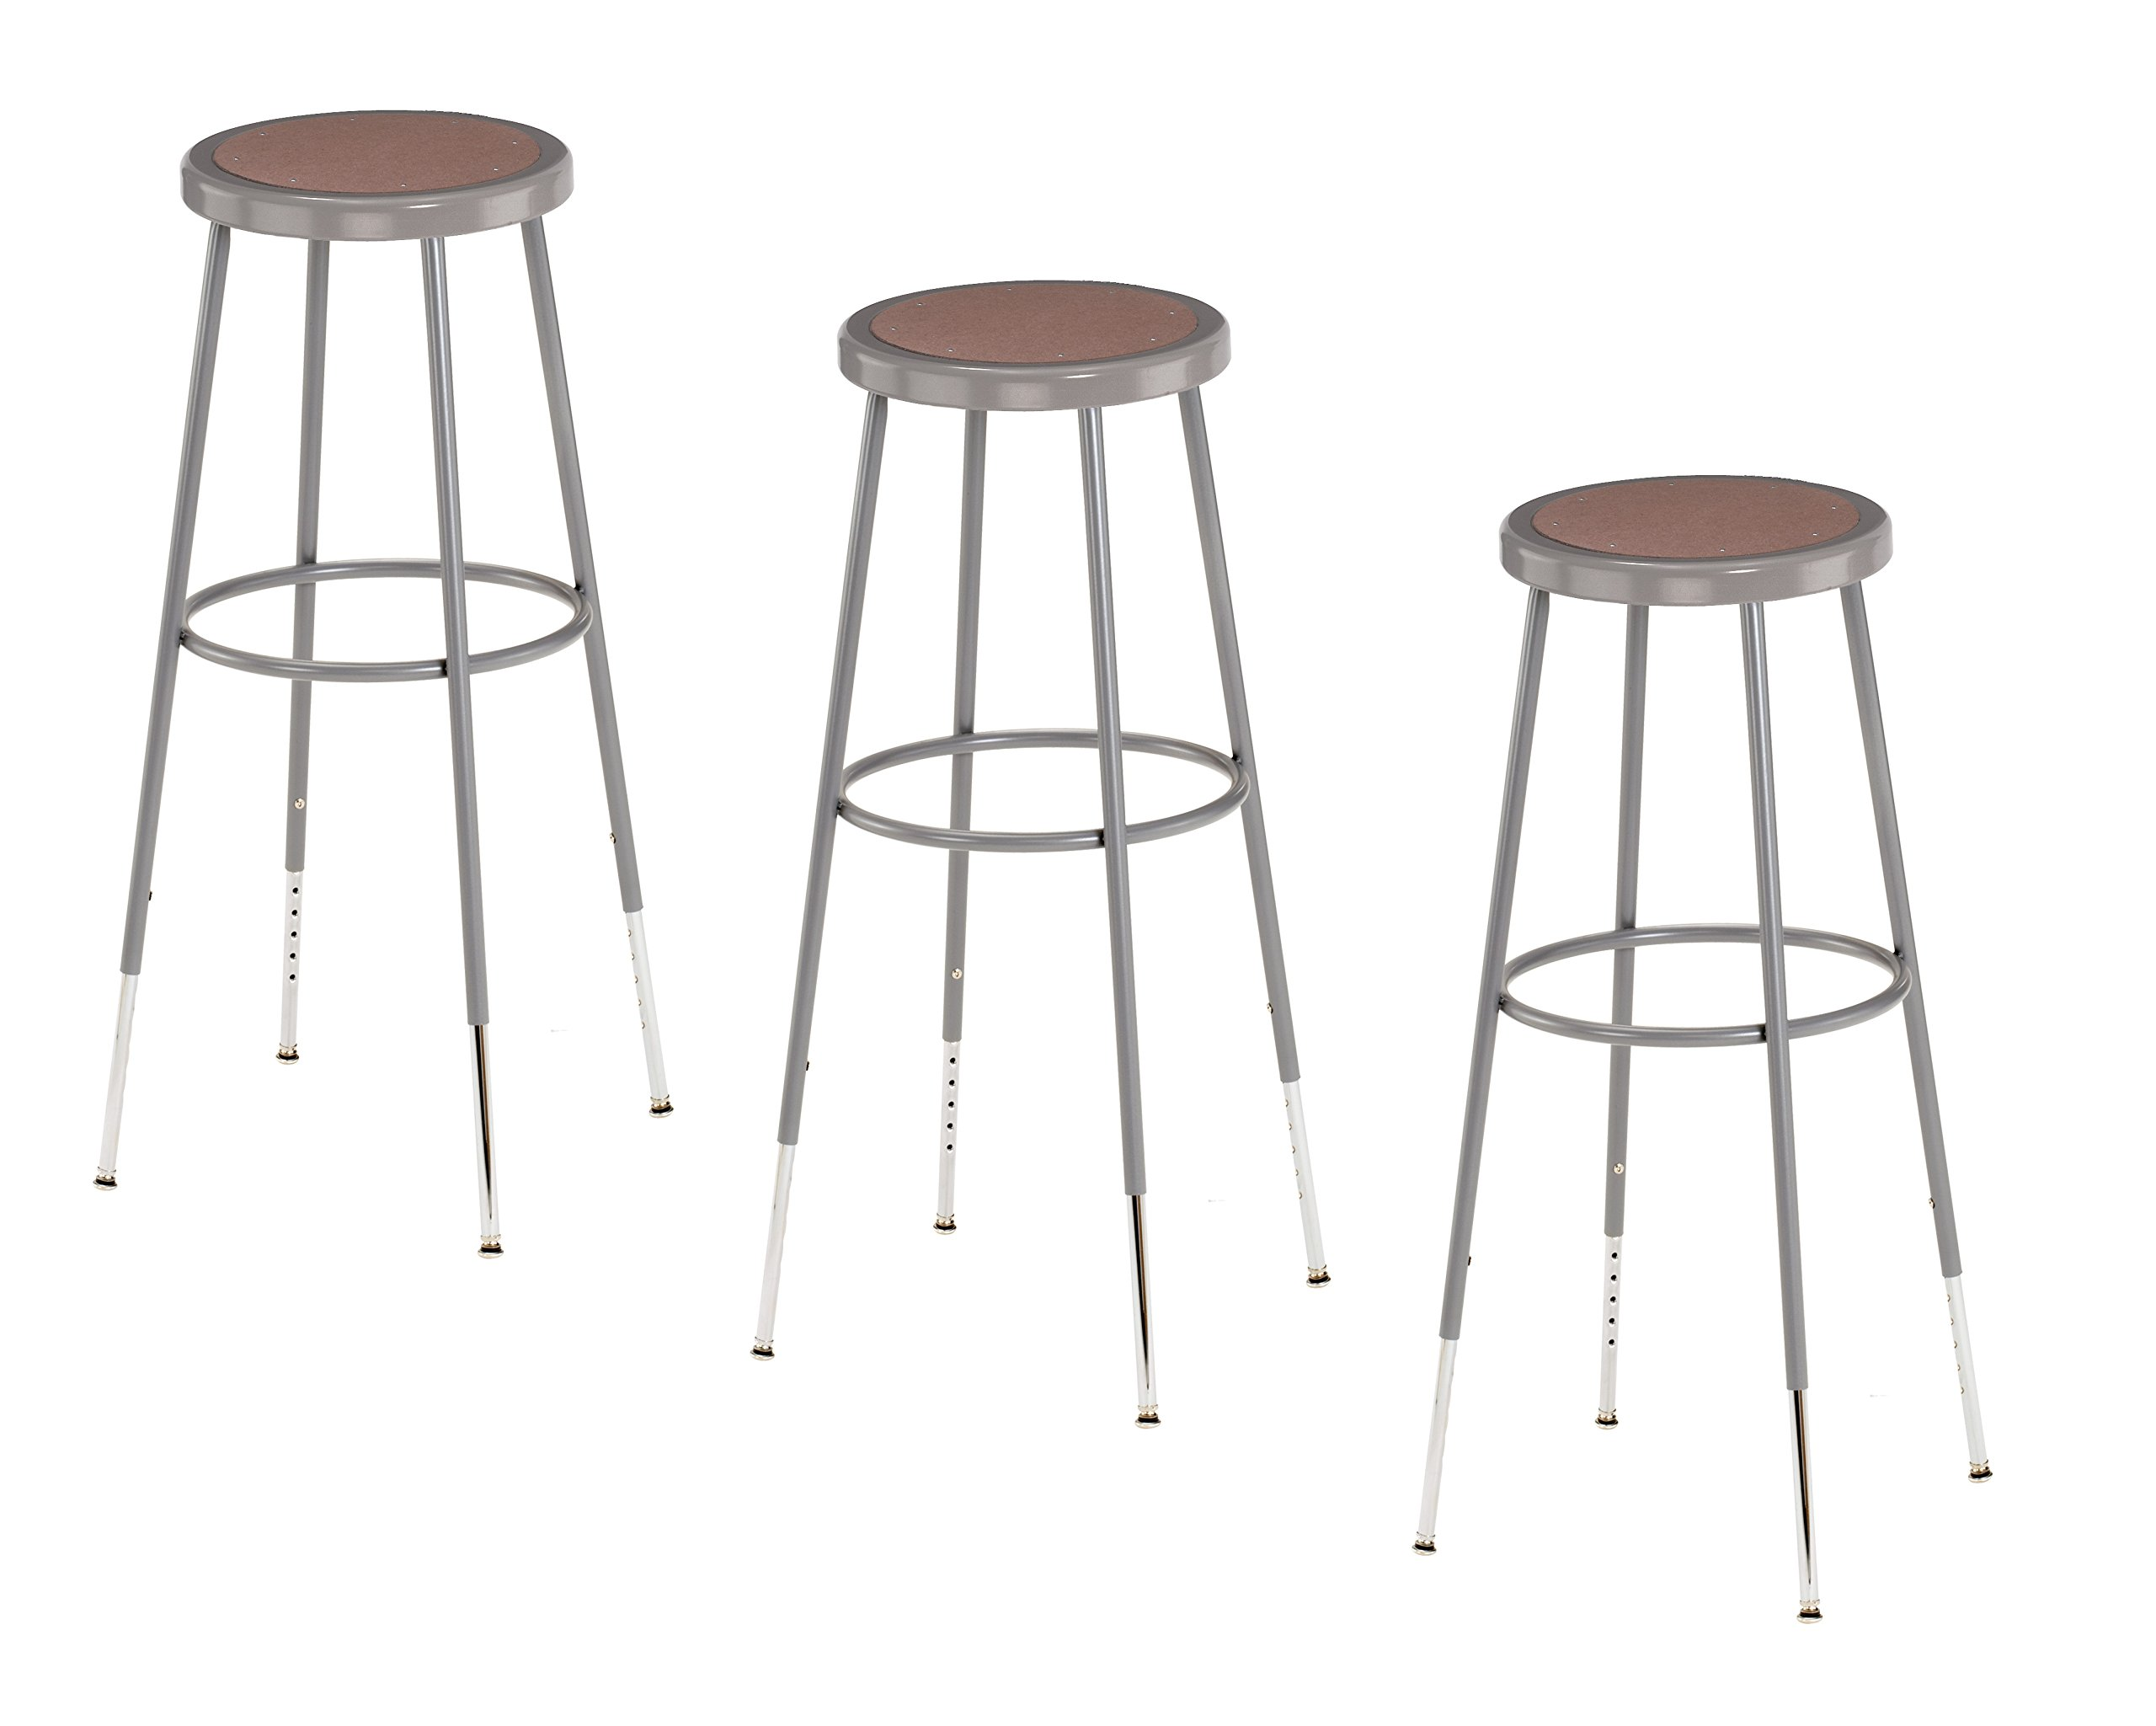 National Public Seating 6230H-CN Steel Stool with Hardboard Seat Adjustable, 31''-39'', Grey (Pack of 3)